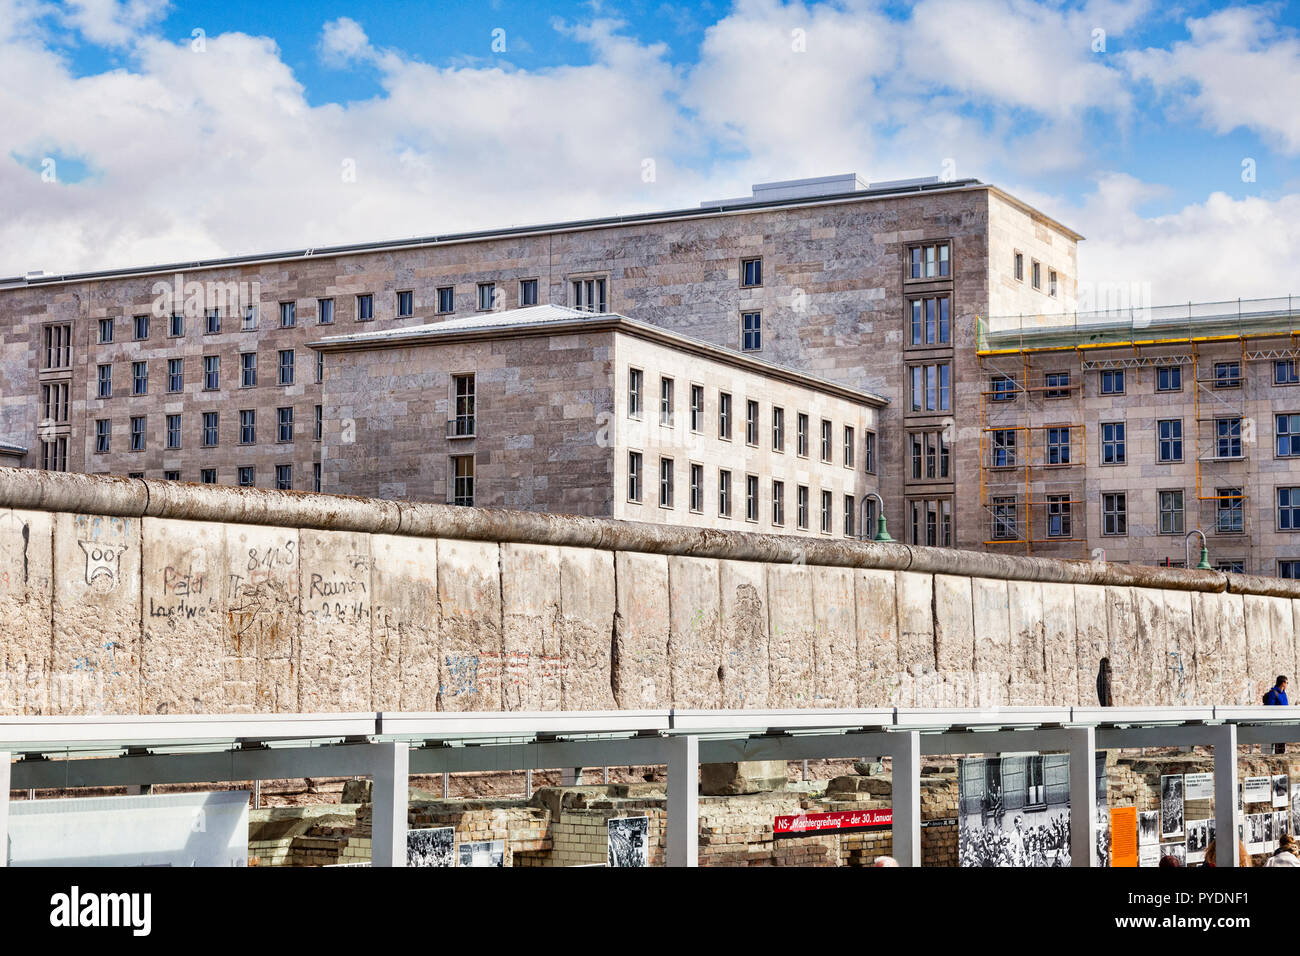 22 September 2018: Berlin, Germany - A preserved section of the Berlin Wall at Topography of Terror, on  Niederkirchnerstrasse, formerly Prinz-Albrech - Stock Image